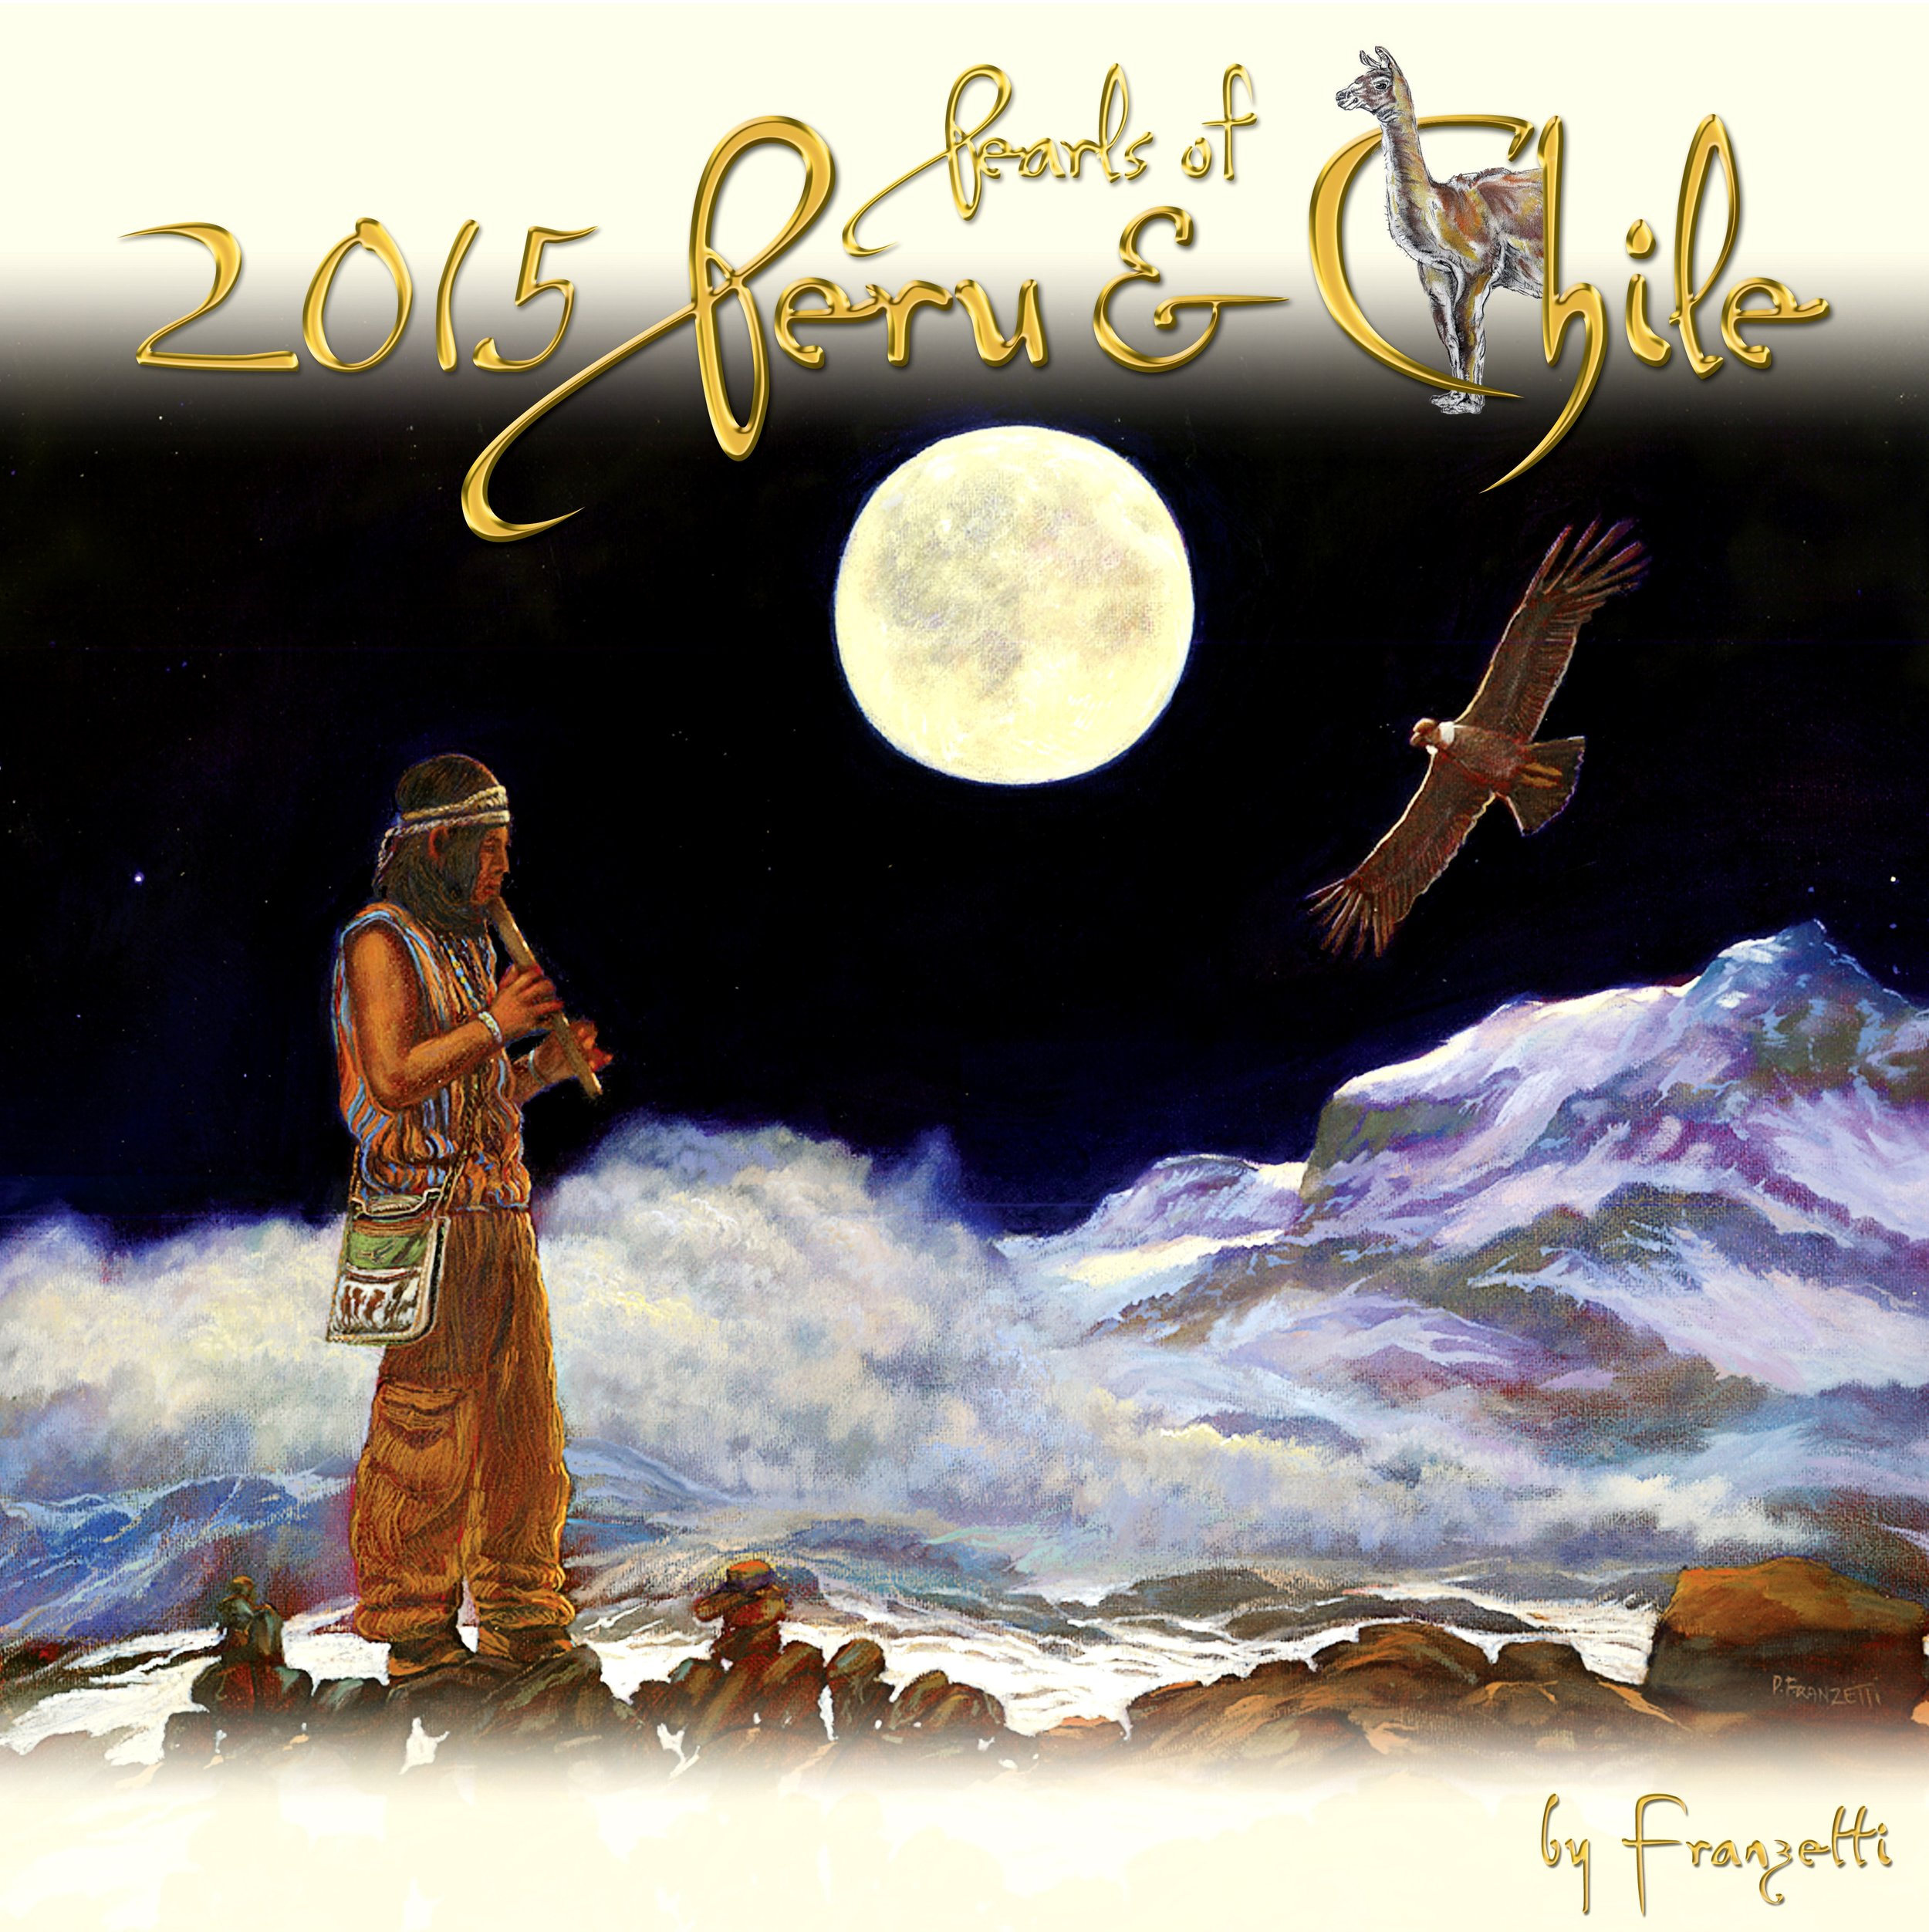 2015 Cover 2 - Pearls of Peru & Chile (Flute Player).jpg